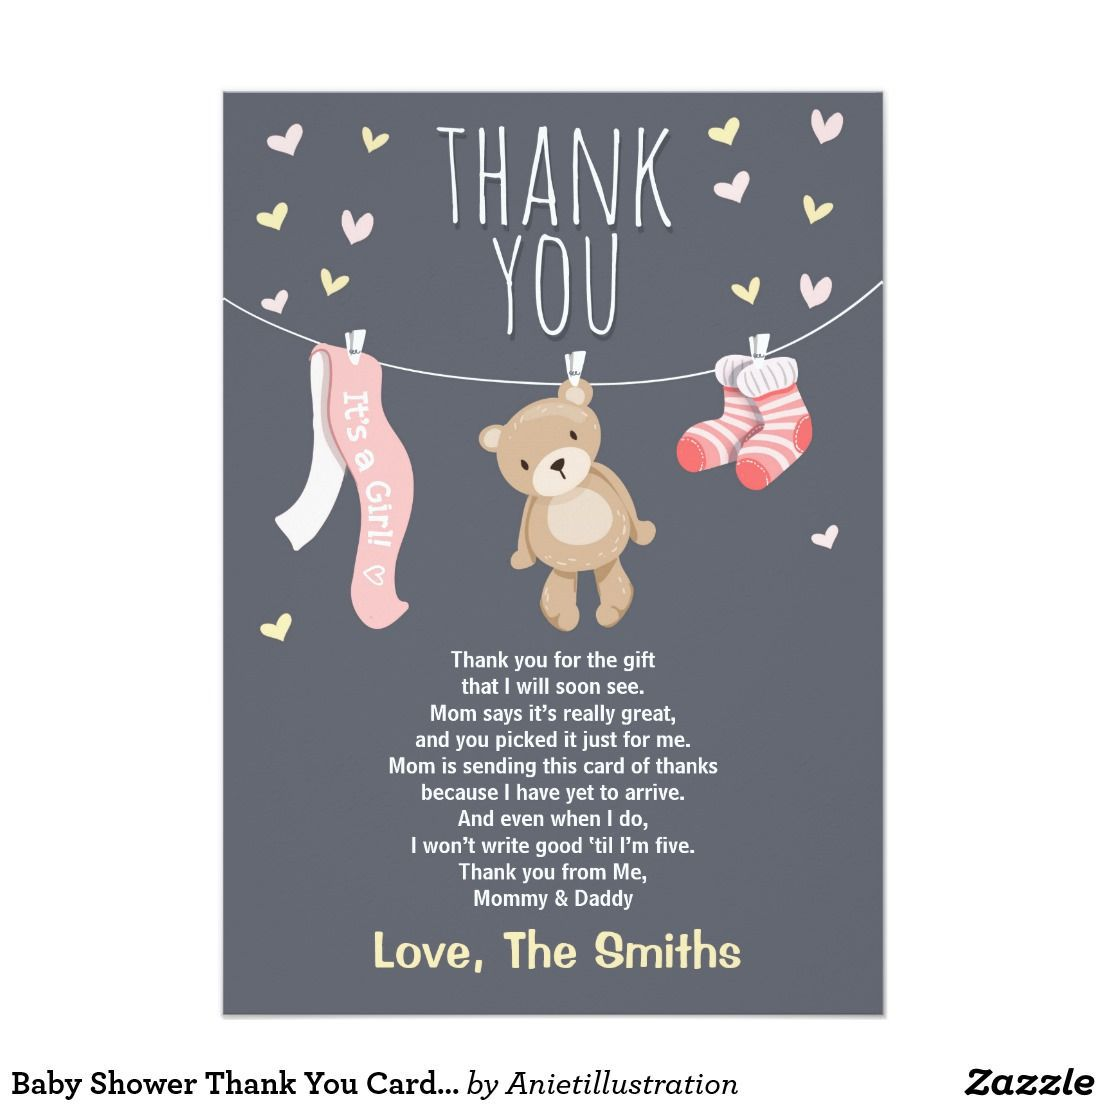 004 Wonderful Thank You Note Wording Baby Shower Concept  For Hosting CardFull